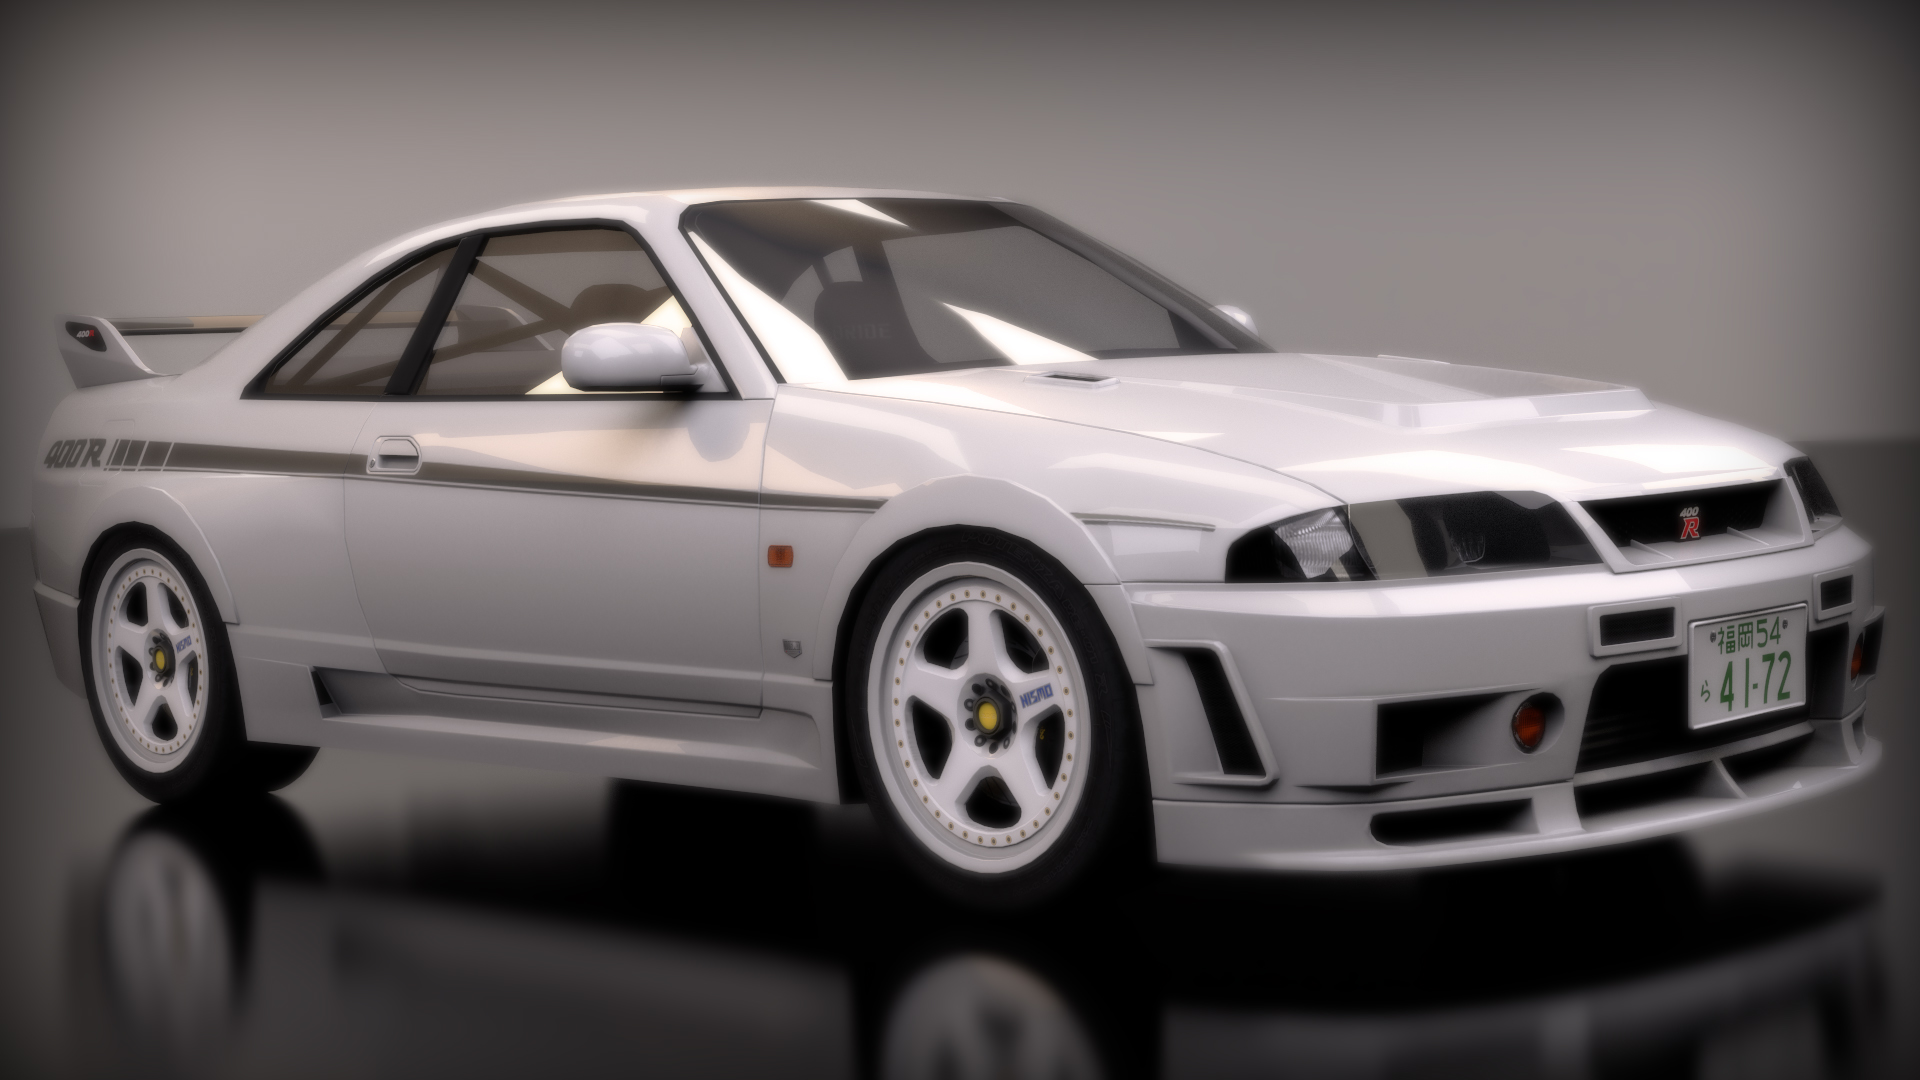 J And M Auto >> Nismo 400R (Silver) by BFG-9KRC on DeviantArt